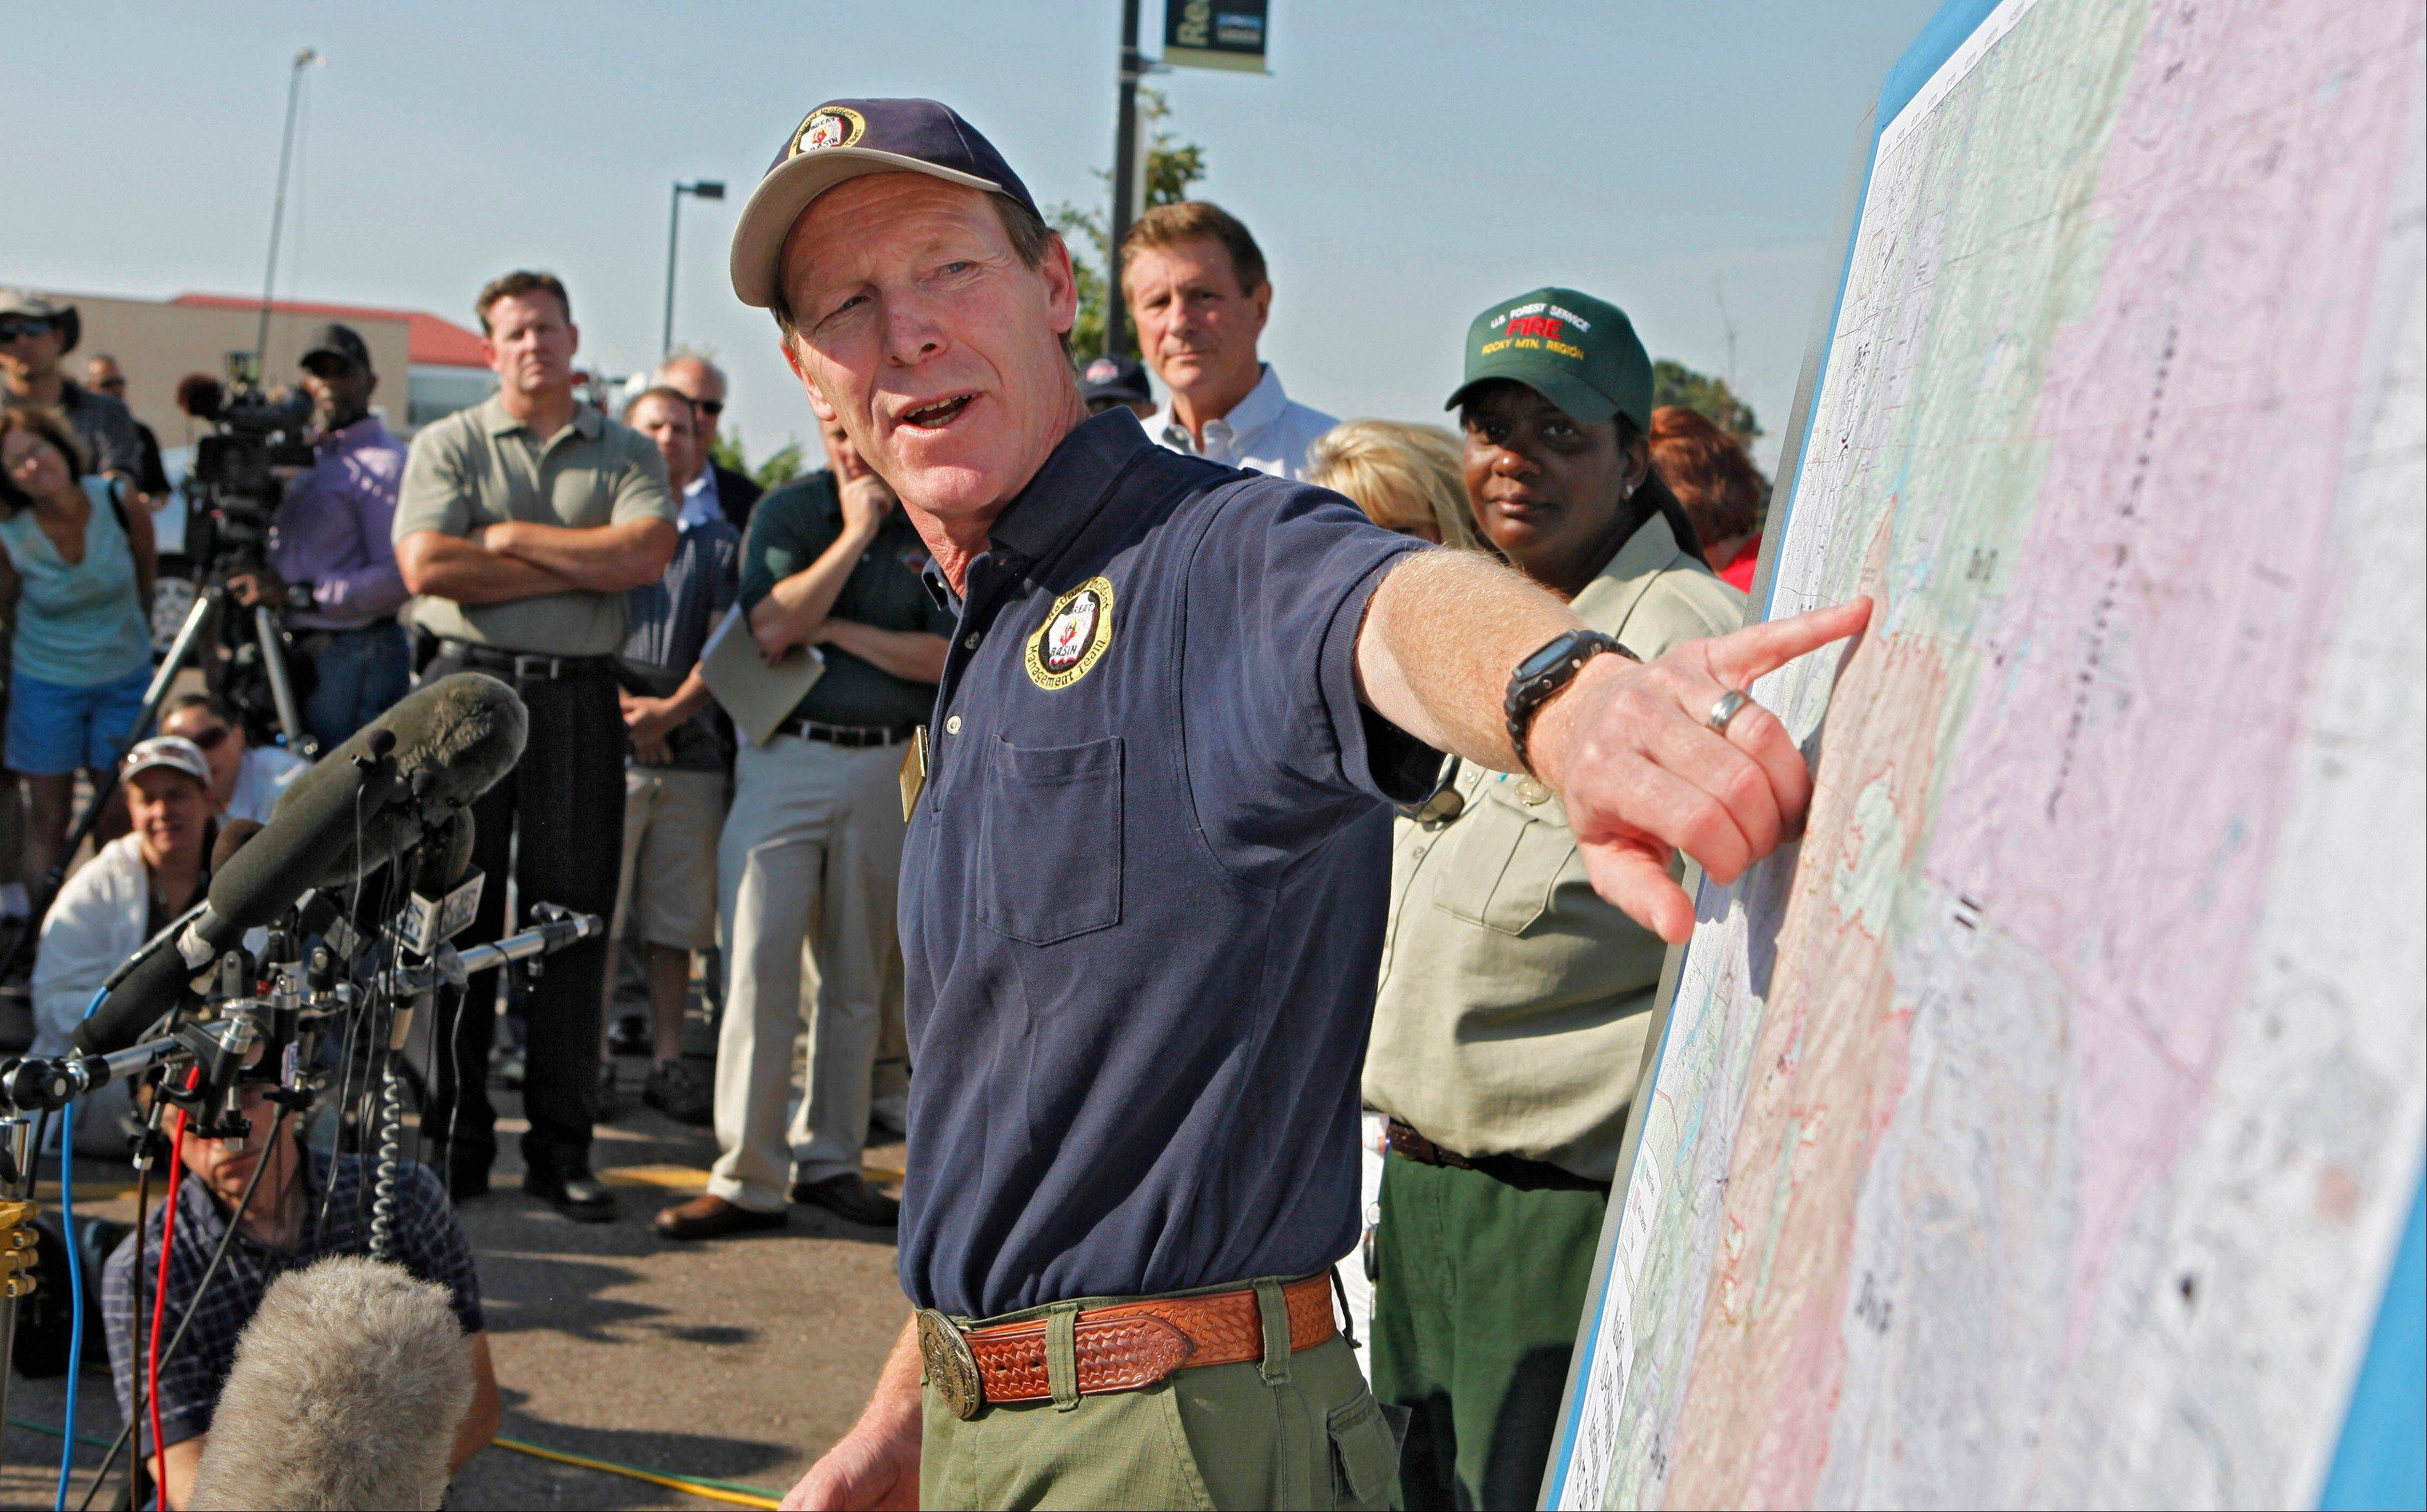 Incident Commander Rich Harvey uses a map as he talks about the Waldo Canyon wildfire during a briefing in Colorado Springs, Colo., on Wednesday, June 27, 2012. Authorities say it remains too dangerous for them to fully assess the damage from a destructive wildfire threatening Colorado's second-largest city.